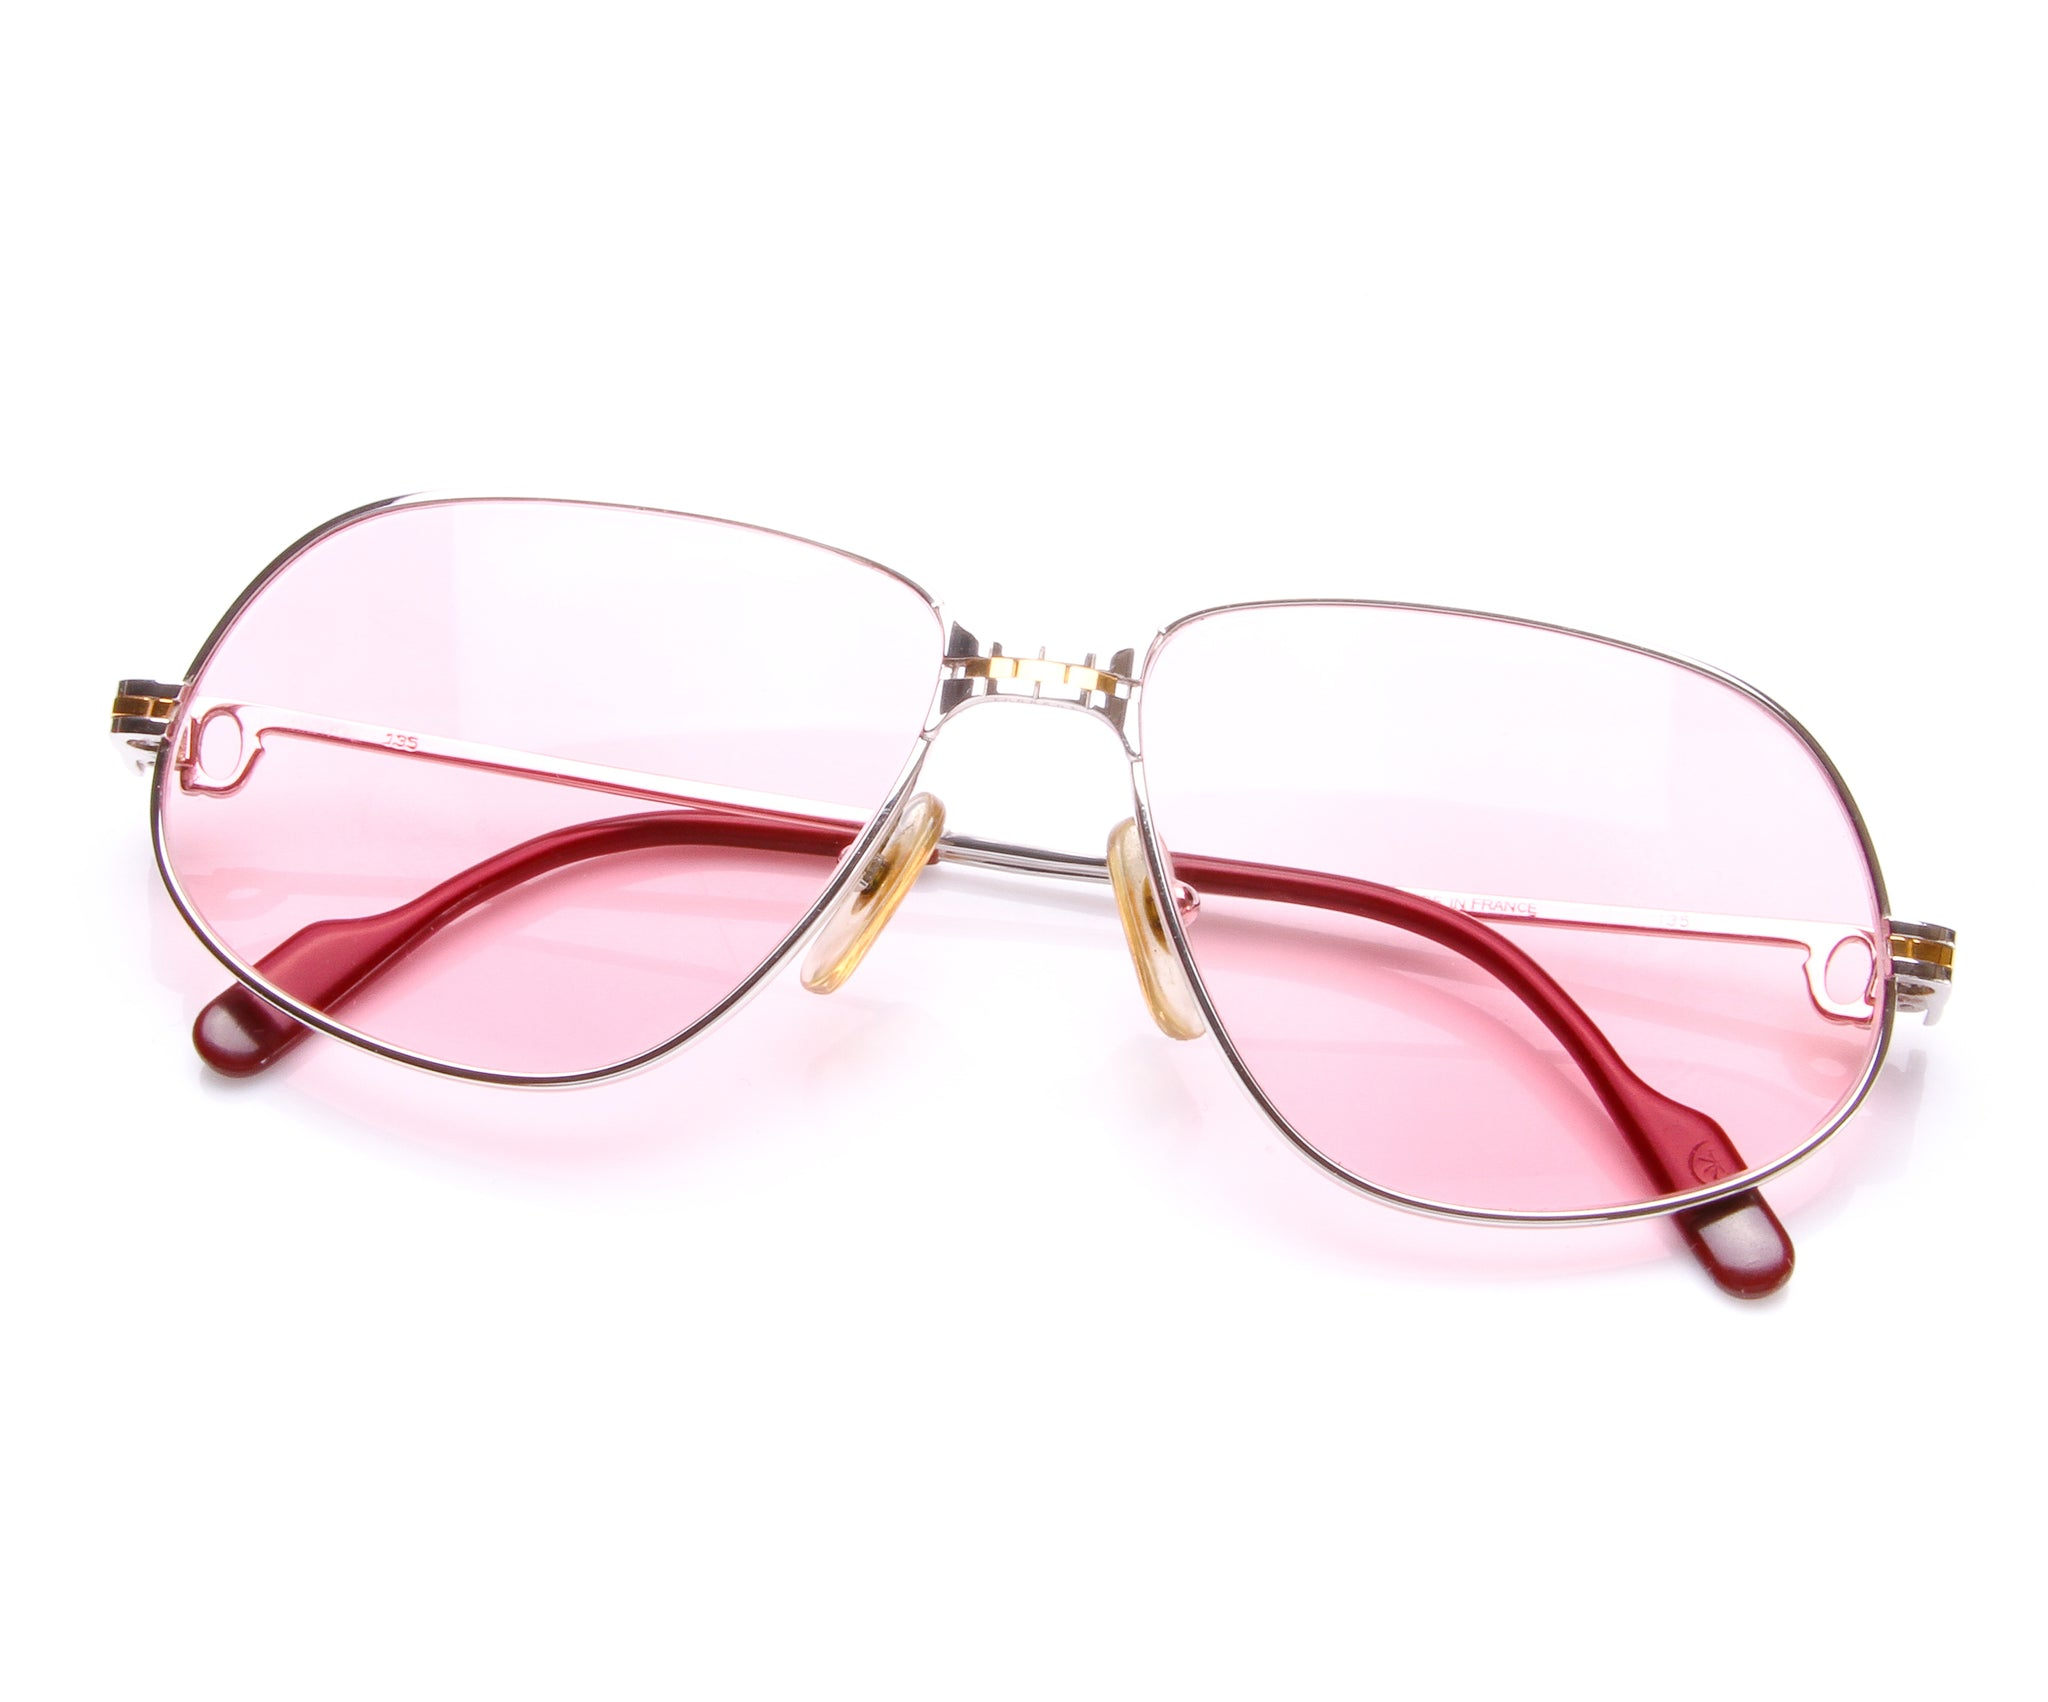 3f777acb4e1b6 Cartier Panthere 2-Tone (Pink) – Vintage Frames Company